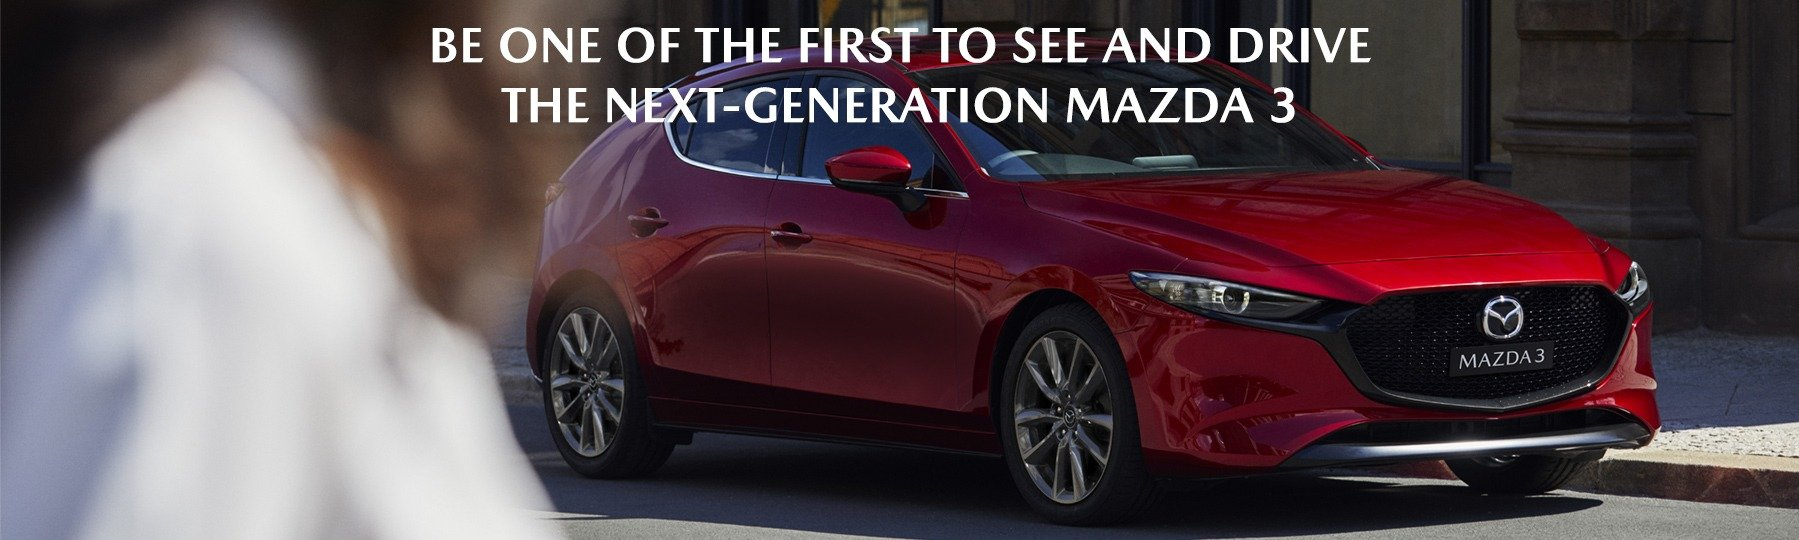 The Next-Generation Mazda 3